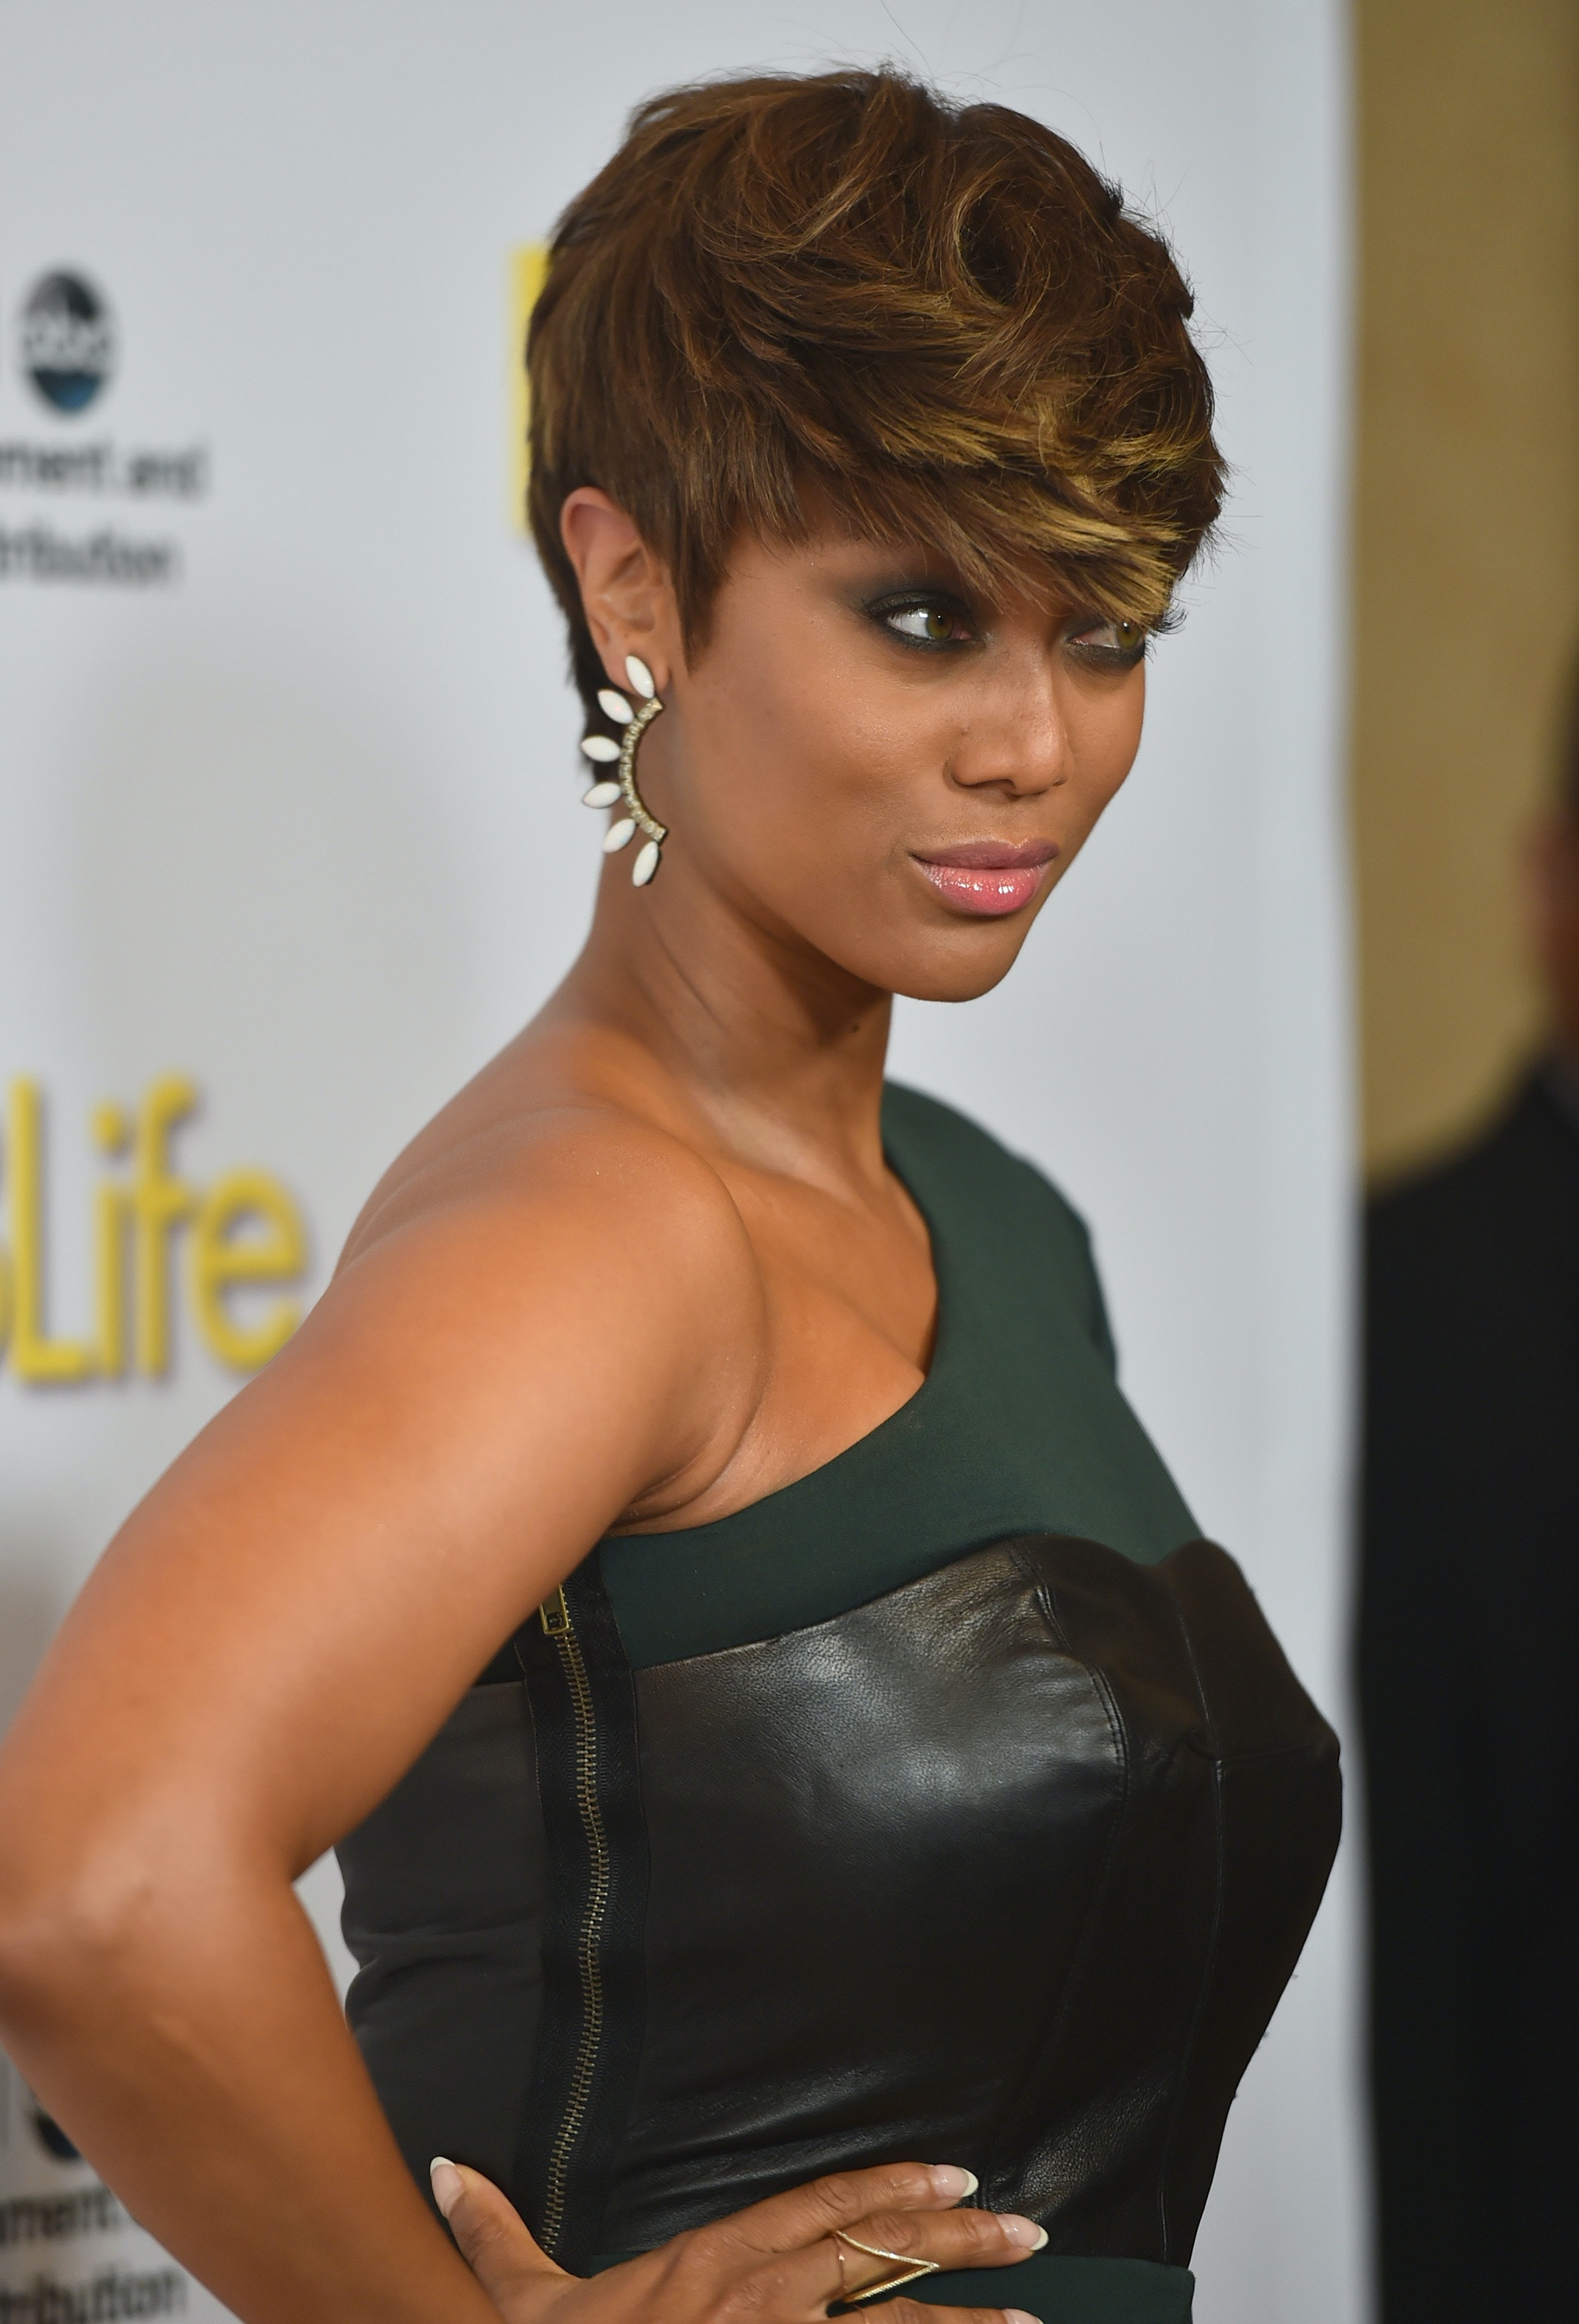 12 tyra banks tweets to live by (the lady is about more than smizing)